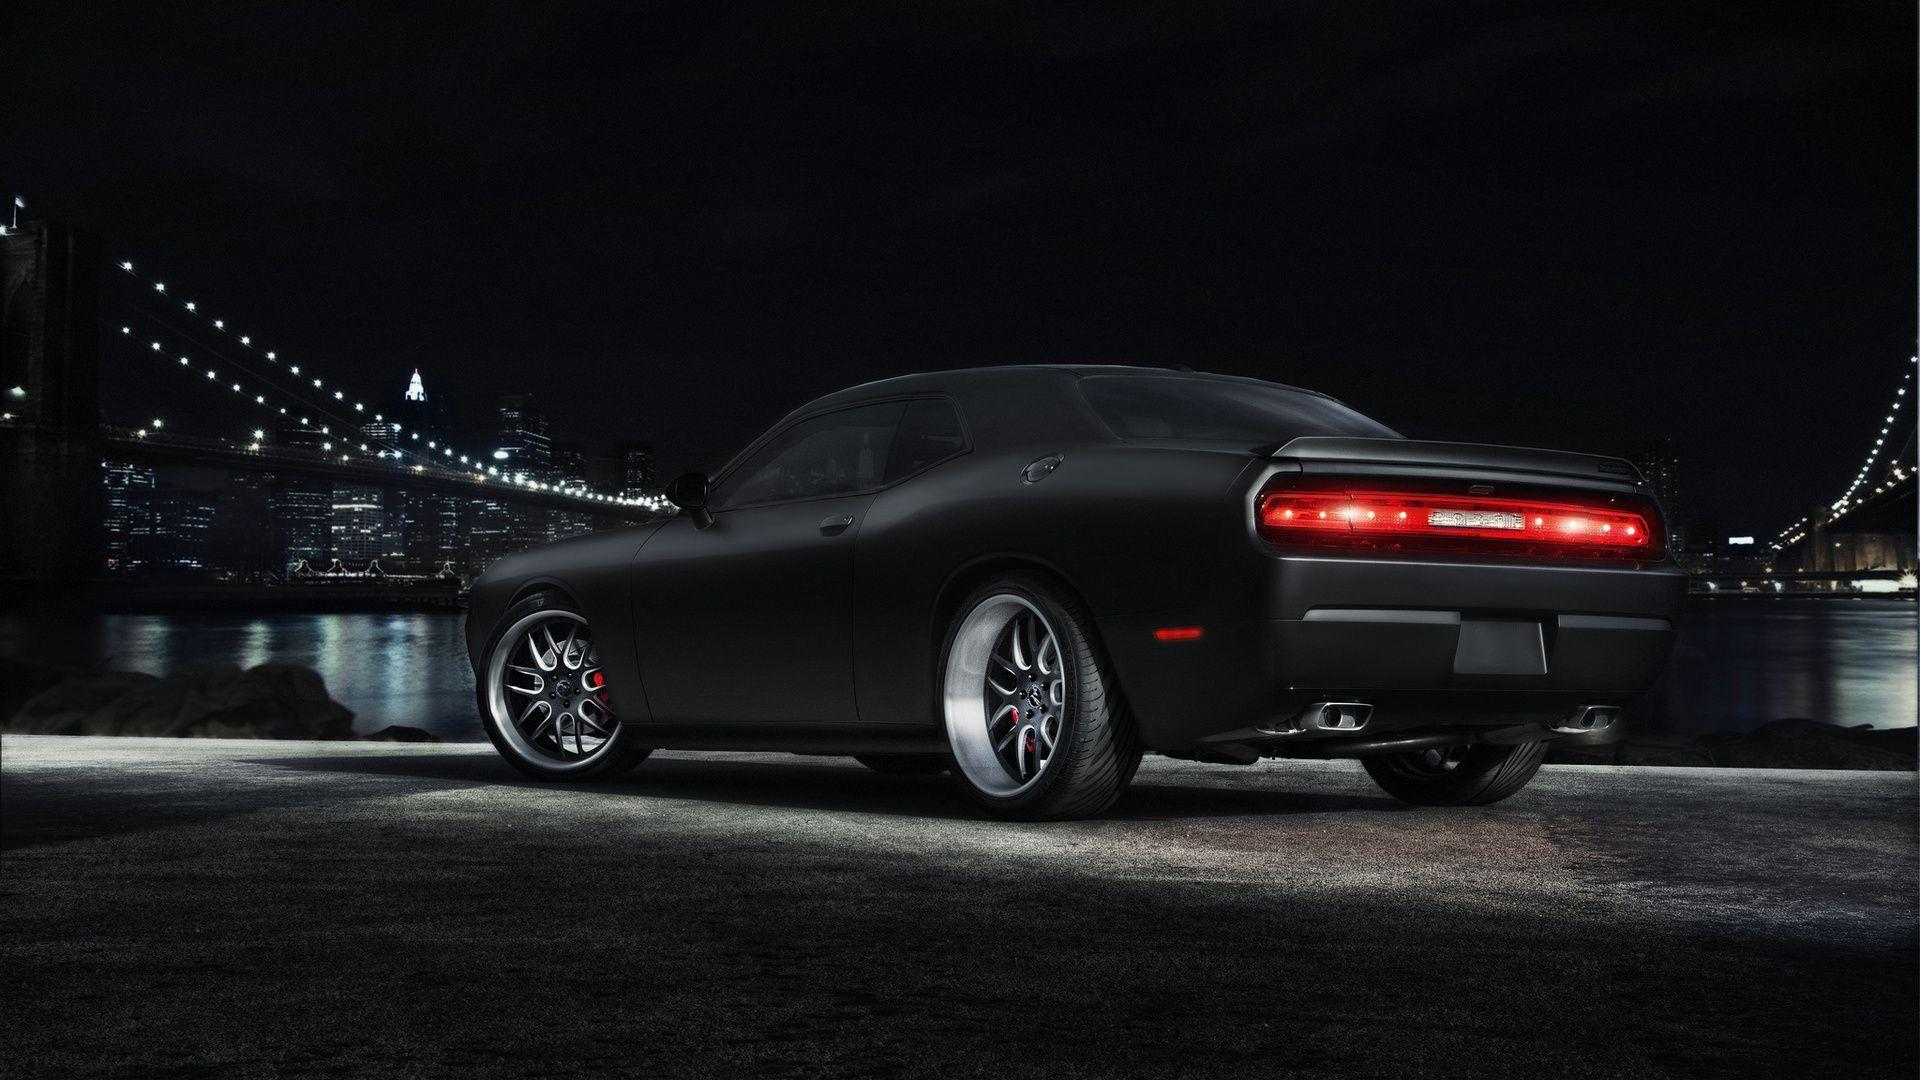 1920x1080 Dodge, Challenger, Black, Dodge, Muscle Car, Challenger